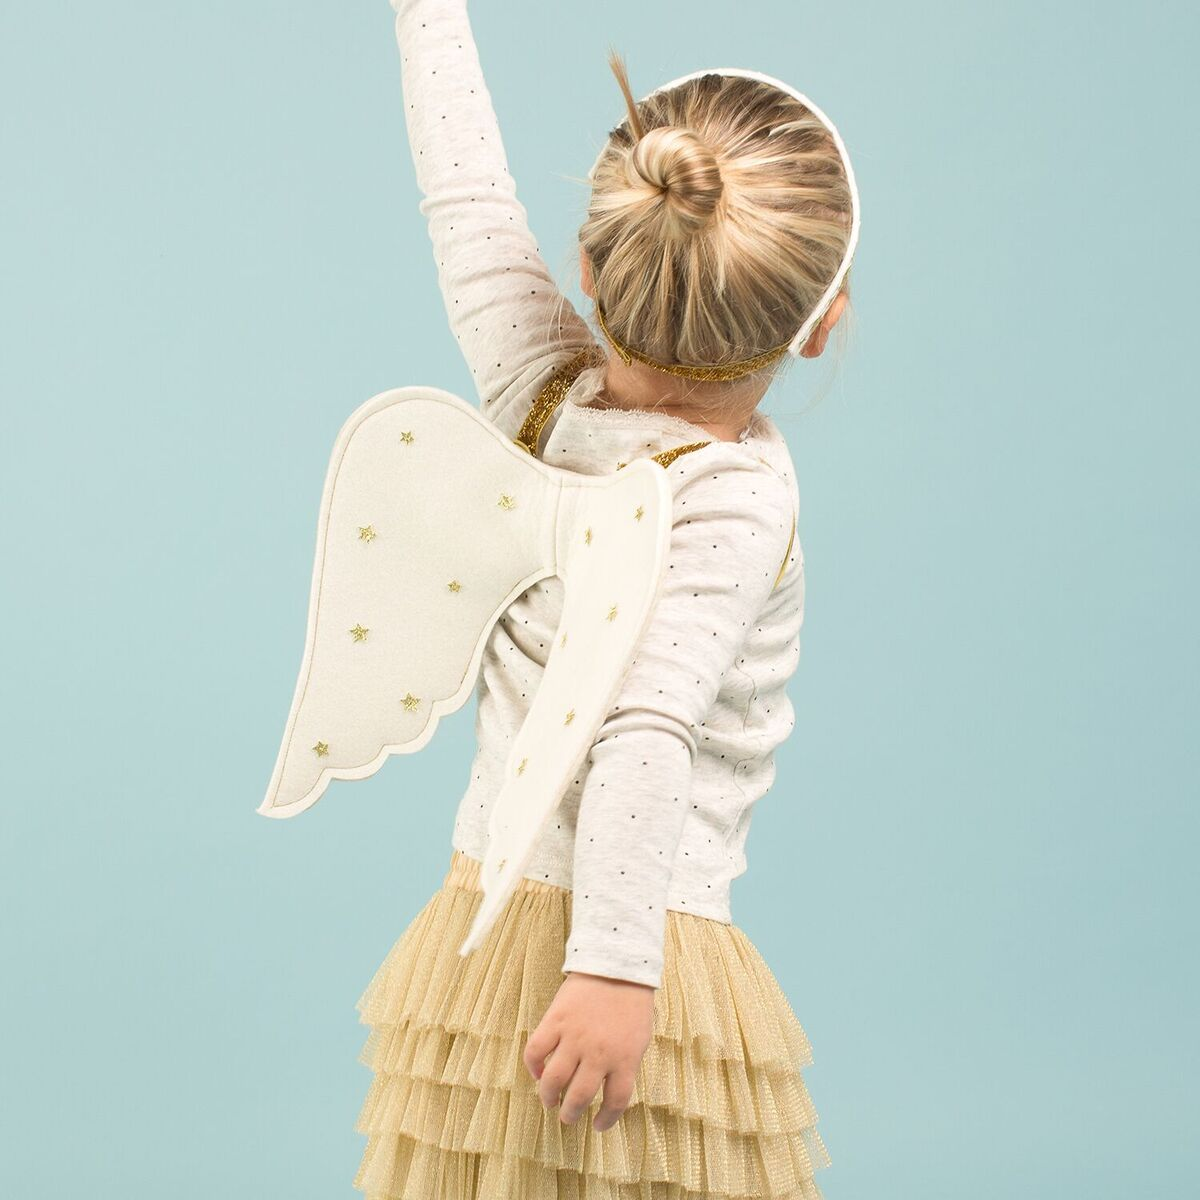 ff104d1a8a62 Meri Meri Dress Up Angel Fairy Wings | The Original Party Bag Company